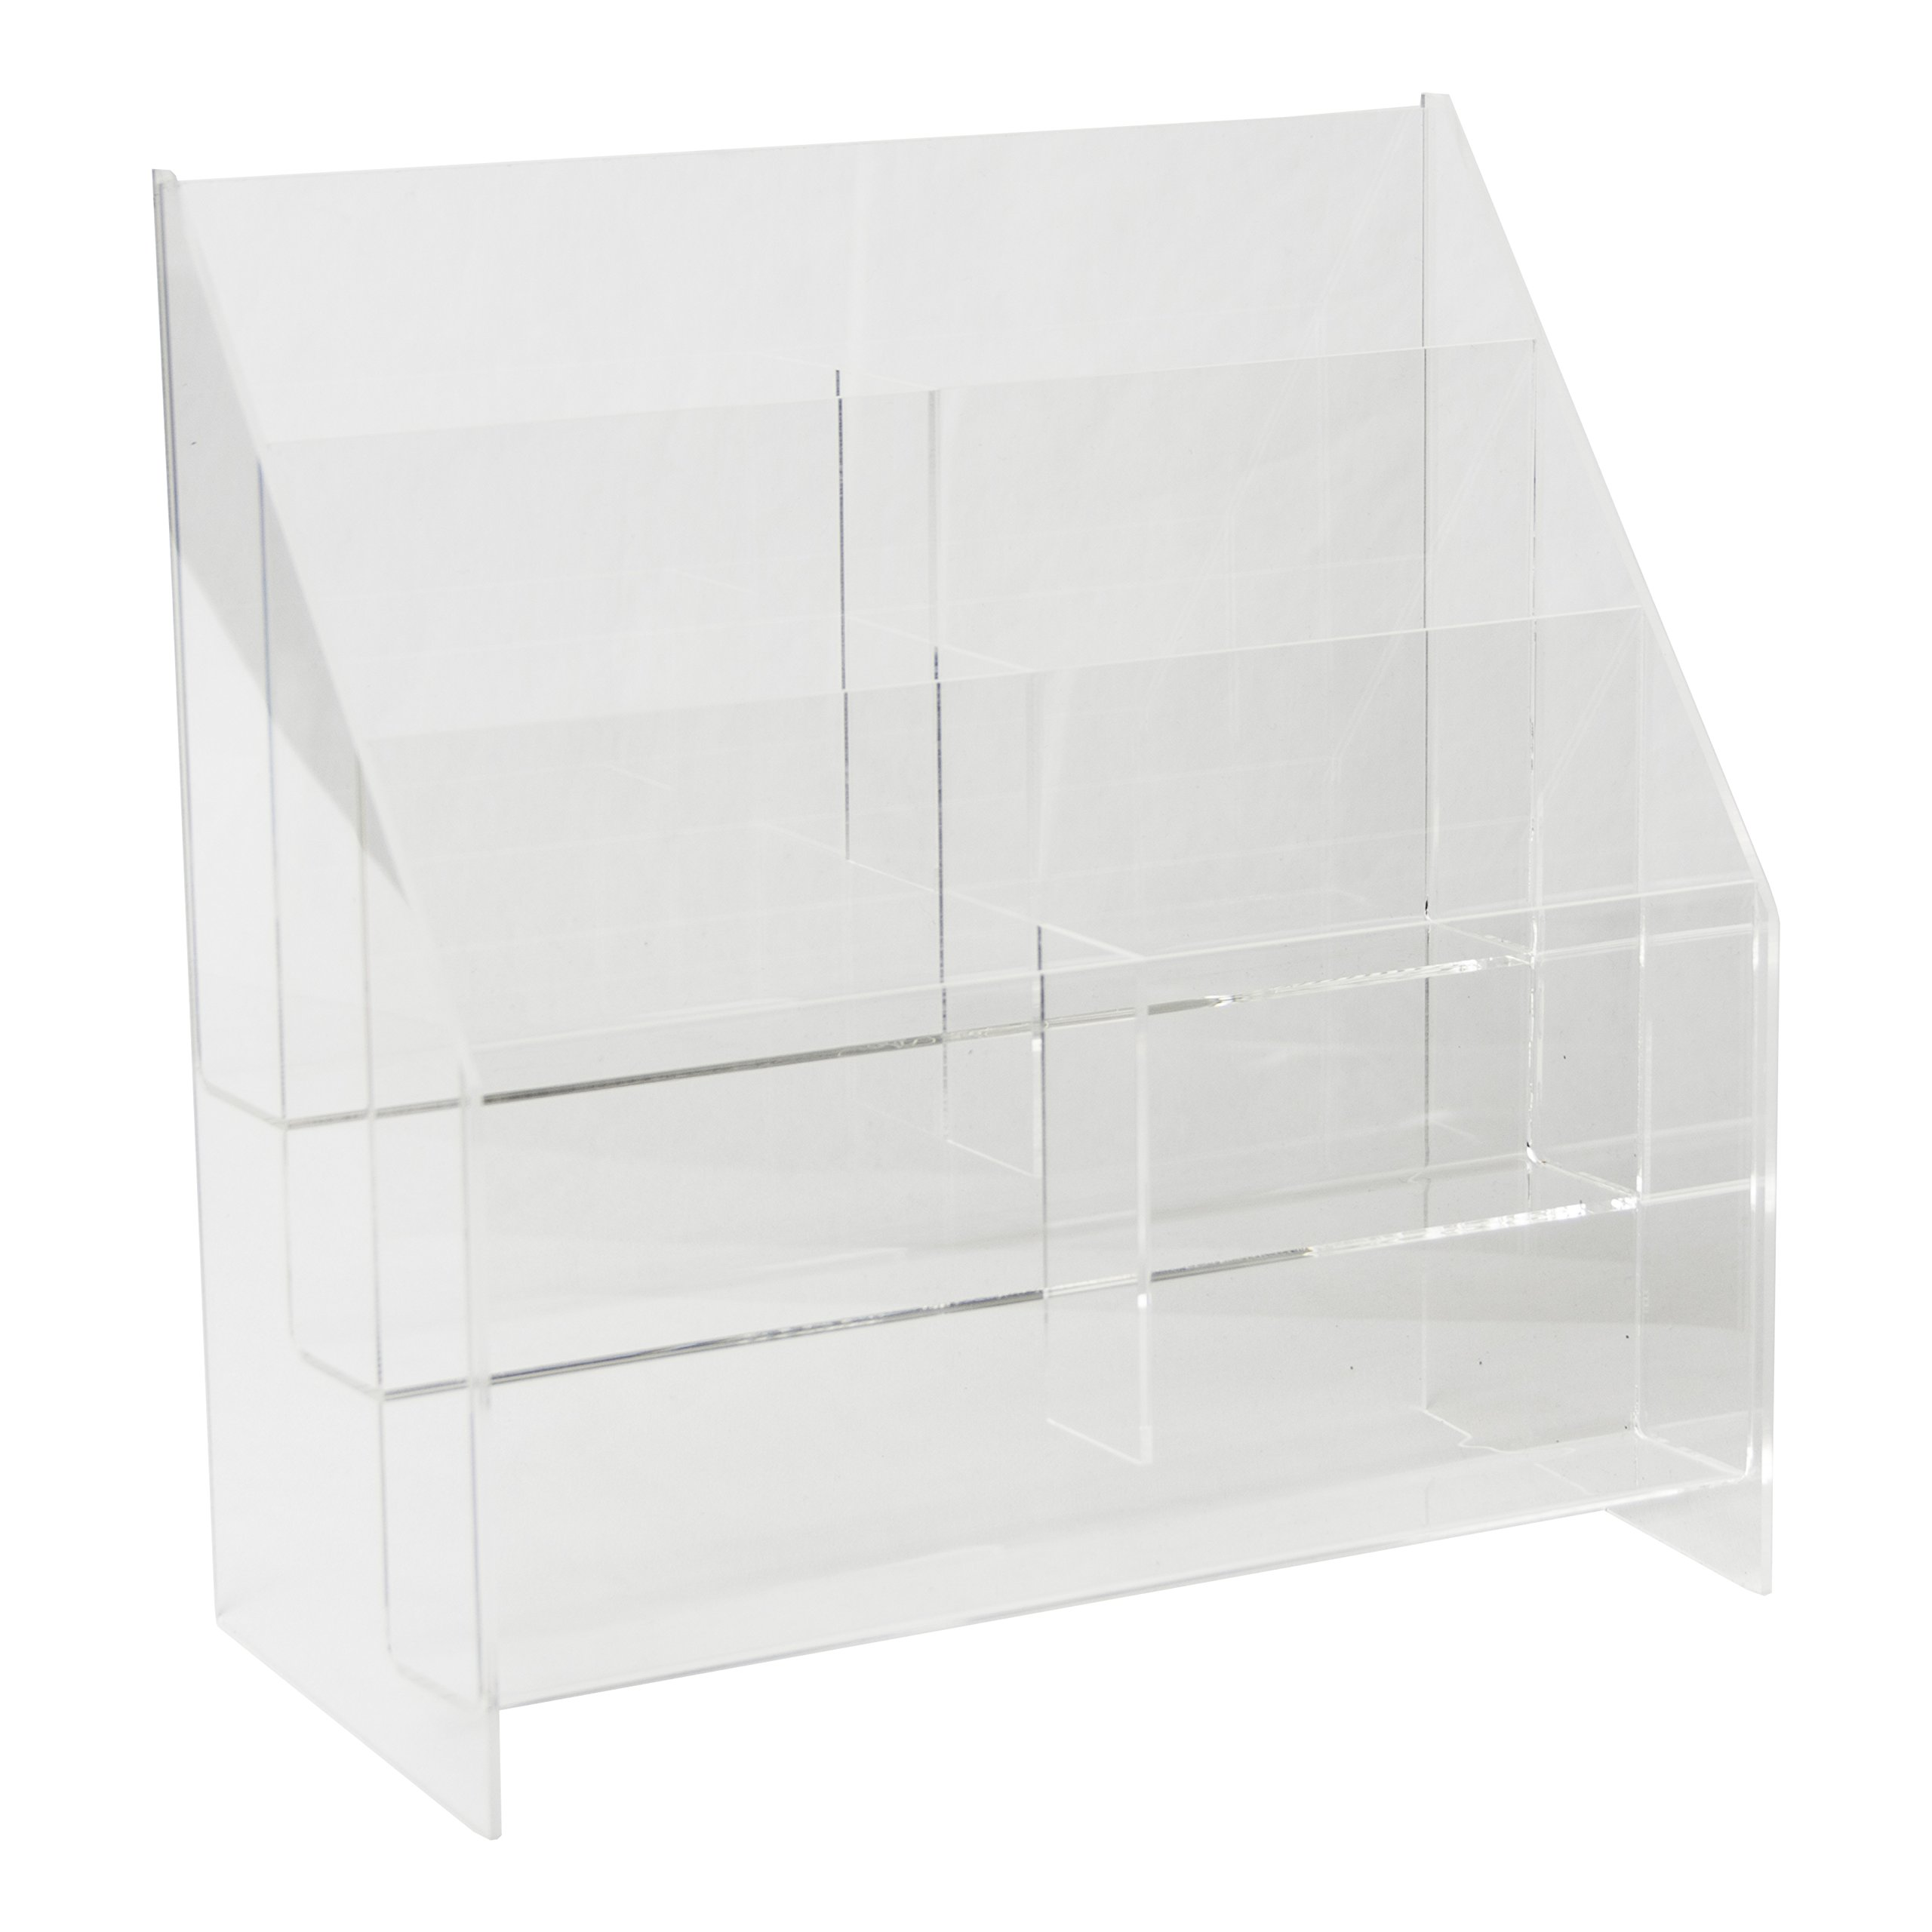 Clear-Ad - MPF-5585-6 - Premium Acrylic 3 Tier 6 Pocket Brochure Holder 5.5x8.5 - Transparent Plastic Pamphlet Display Stand (Pack of 4)